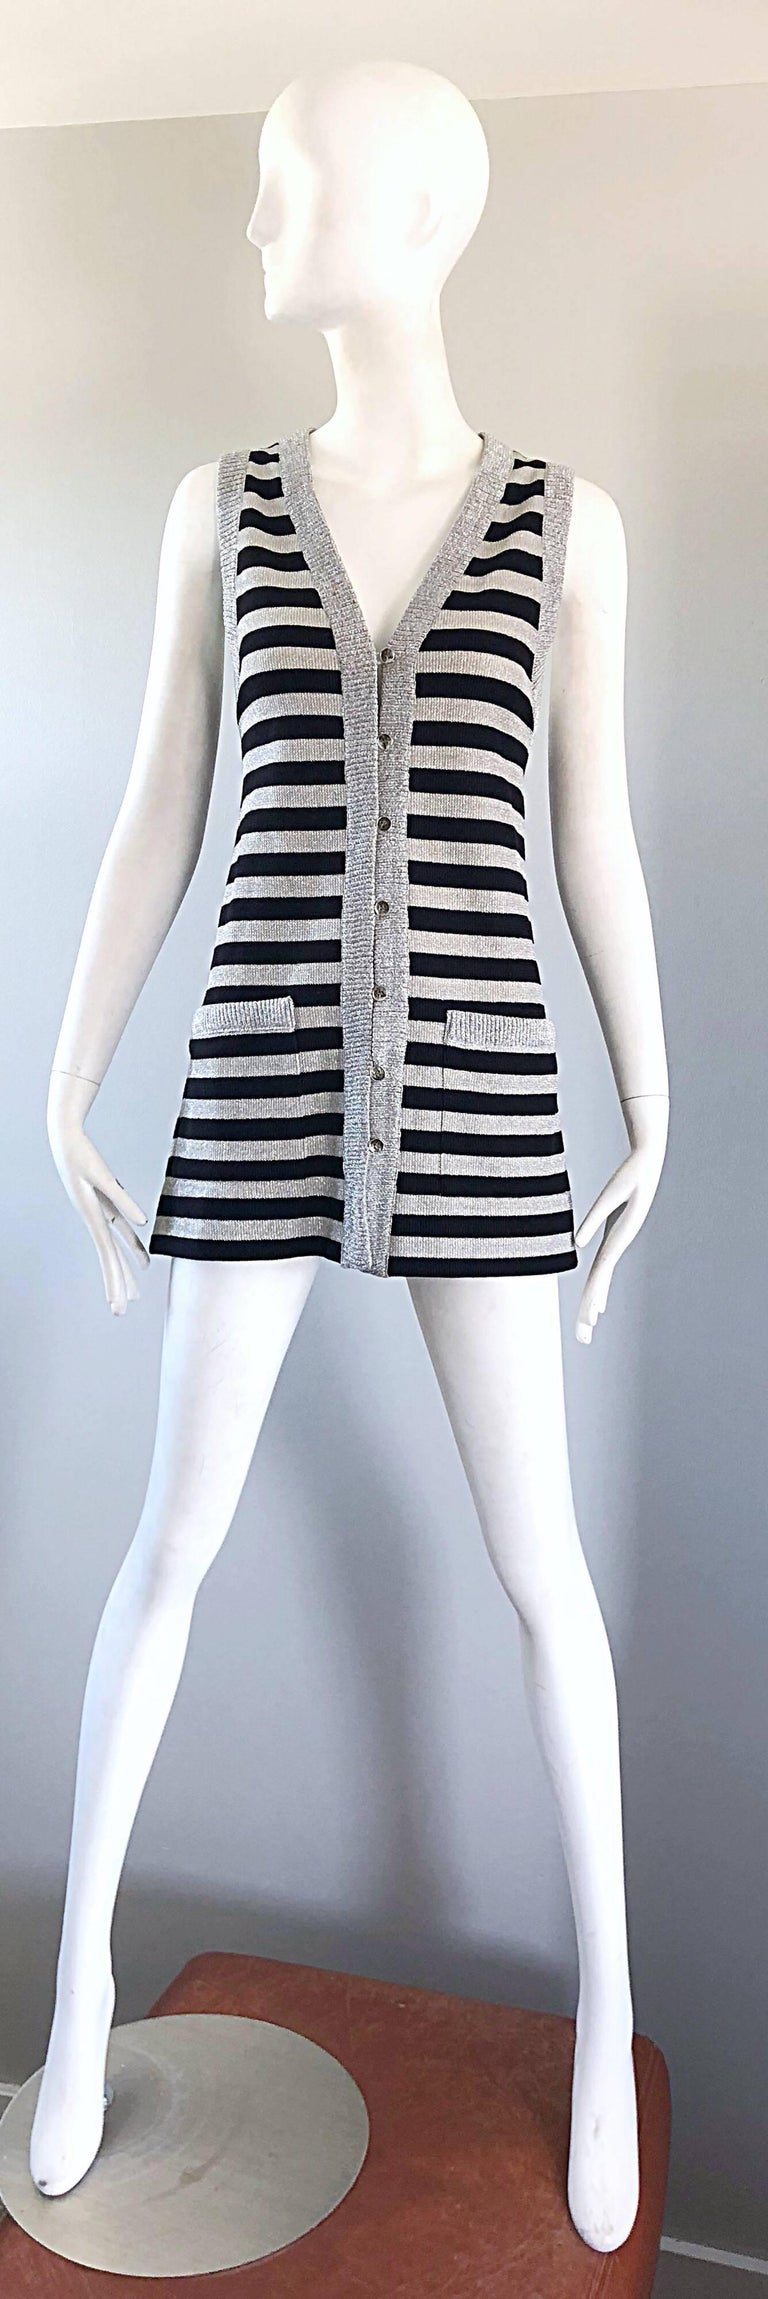 Chic 70s silver and black metallic striped sleeveless tunic vest OR mini dress! Silver buttons down the front make this piece perfect for layering (or on its own). Pockets at each side of the waist. Great belted or alone. In perfect